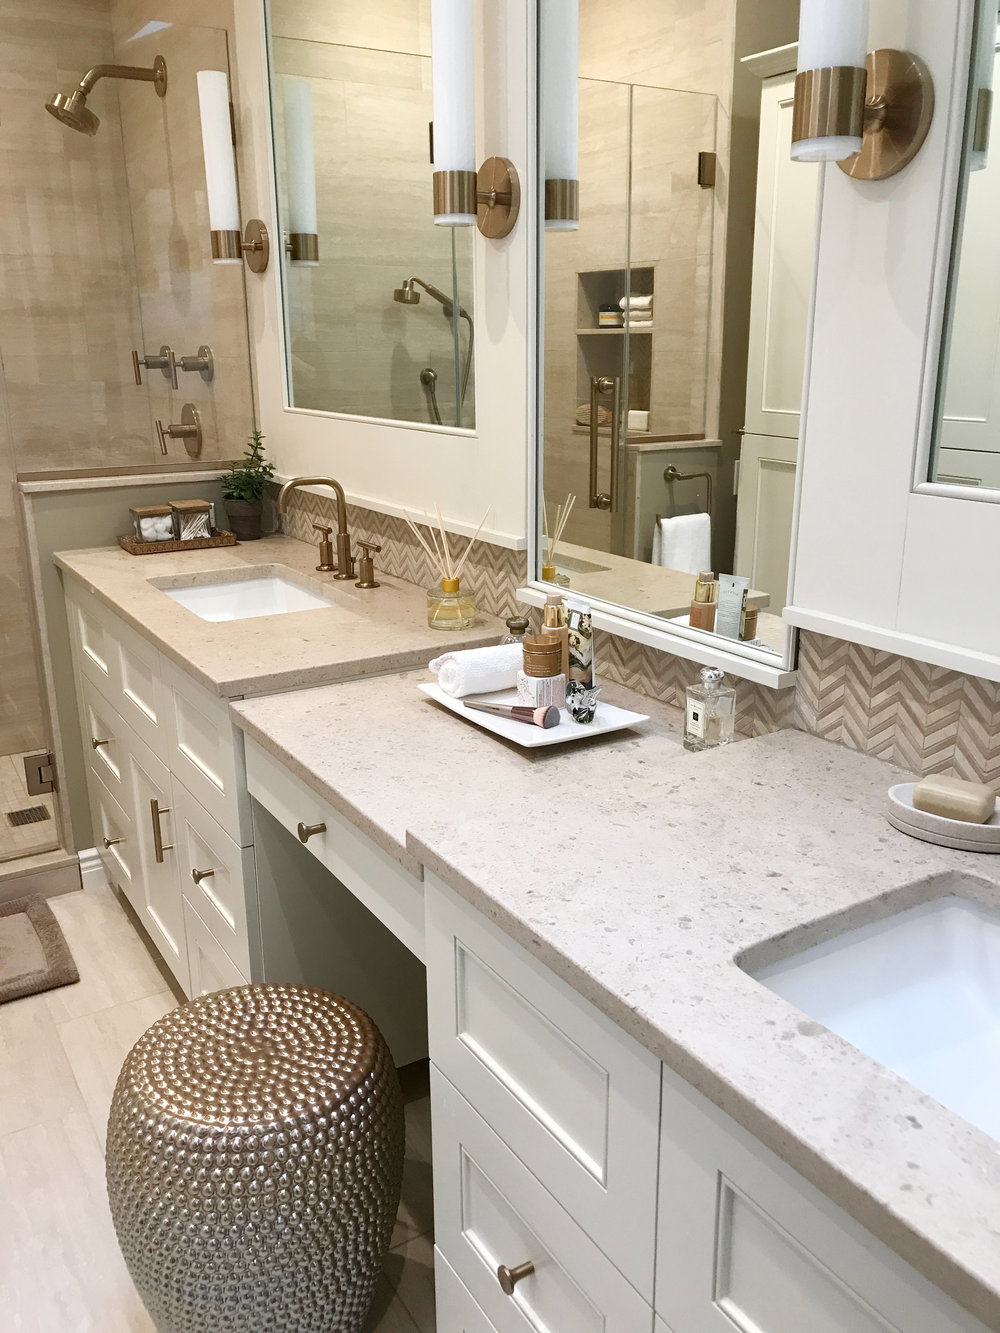 KAM Design_MasterBath_Vanities_MakeupTable_Mirrors_Pleasantville_2017 - 10.jpg